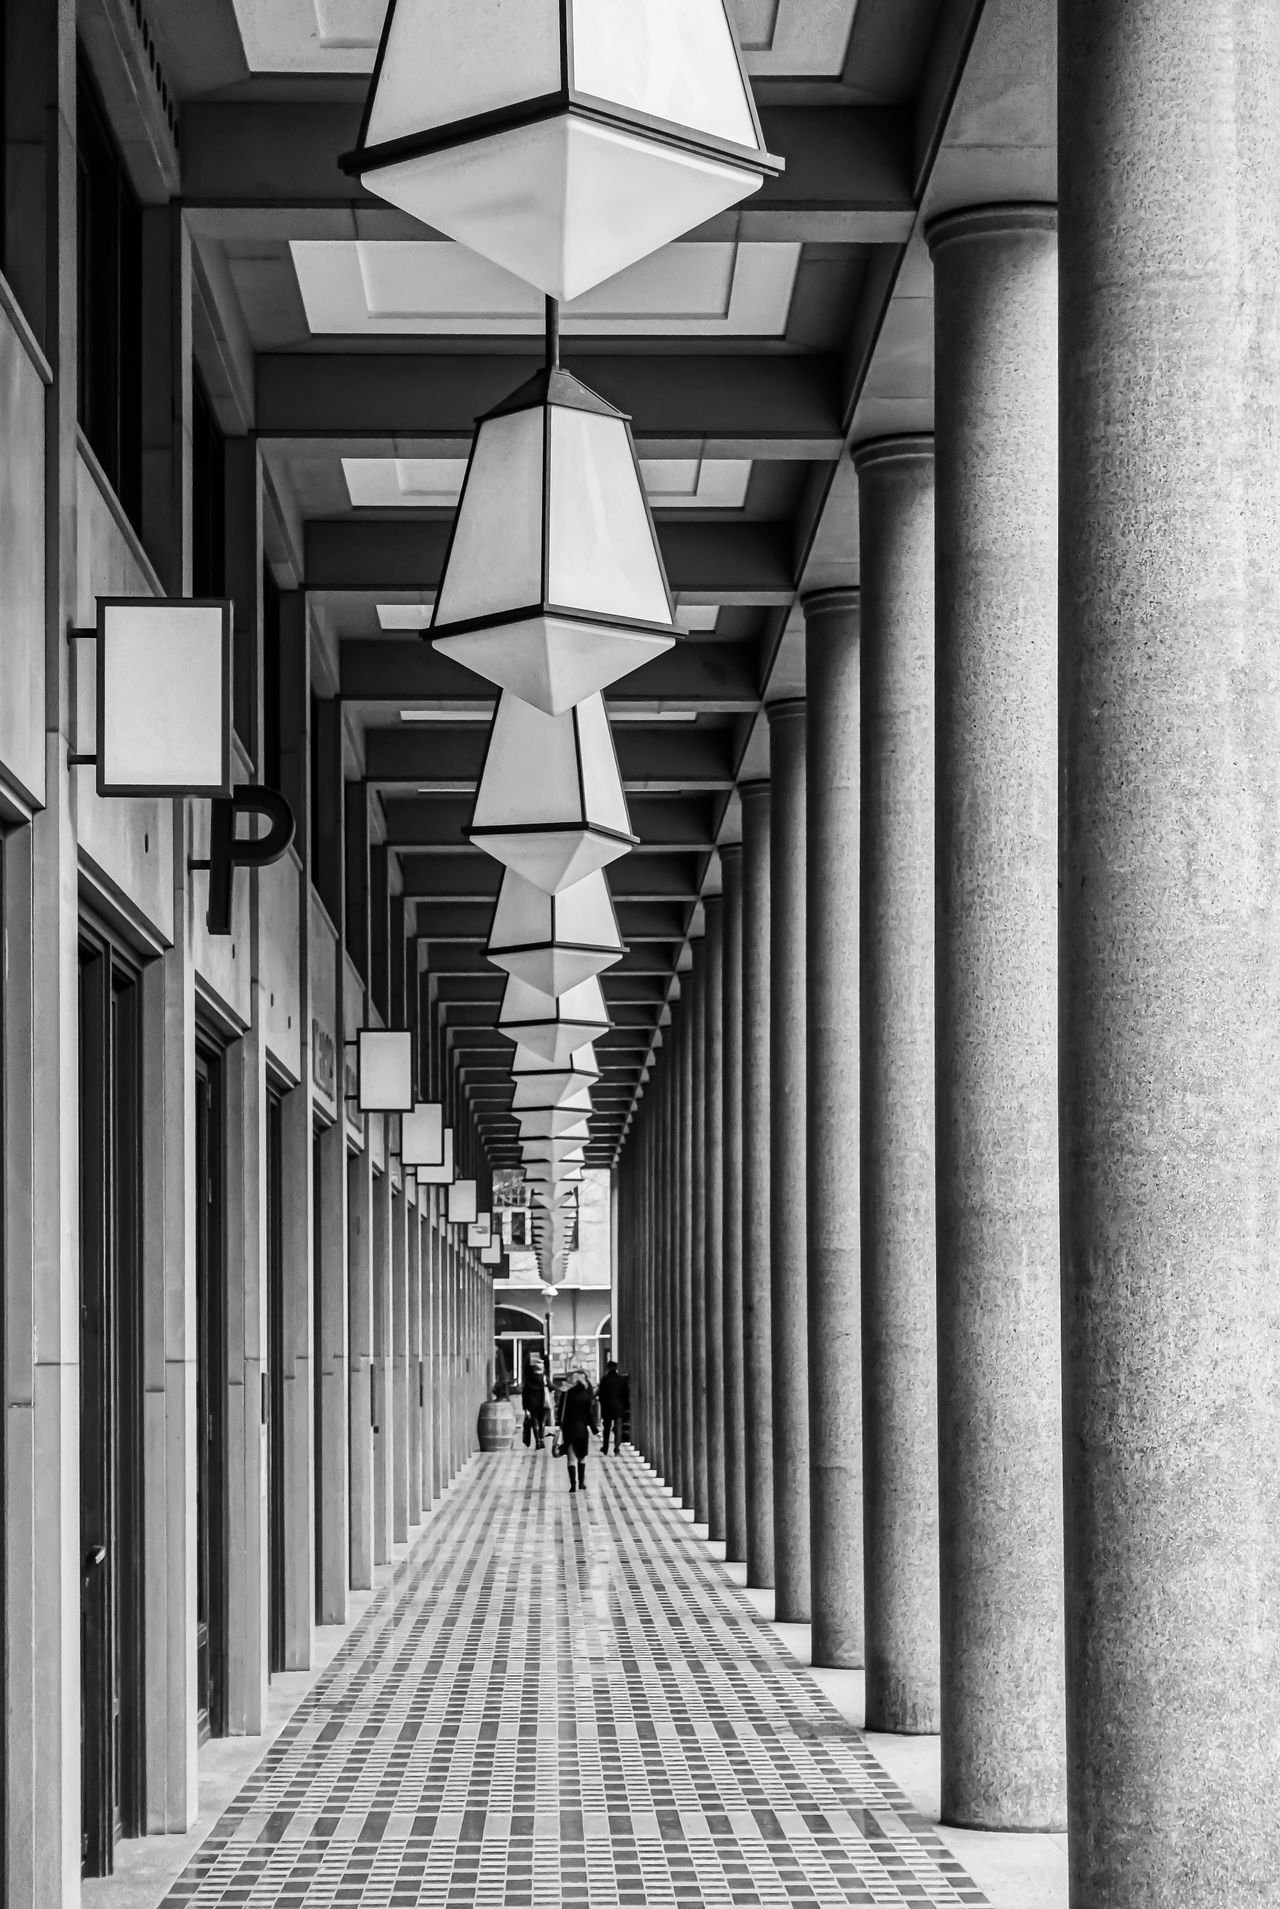 Black & White Colonnade Modern Architecture Arcade Architectural Column Architecture Black And White Built Structure Corridor Day In A Row Indoors  One Person People Pillars Real People The Way Forward Walking